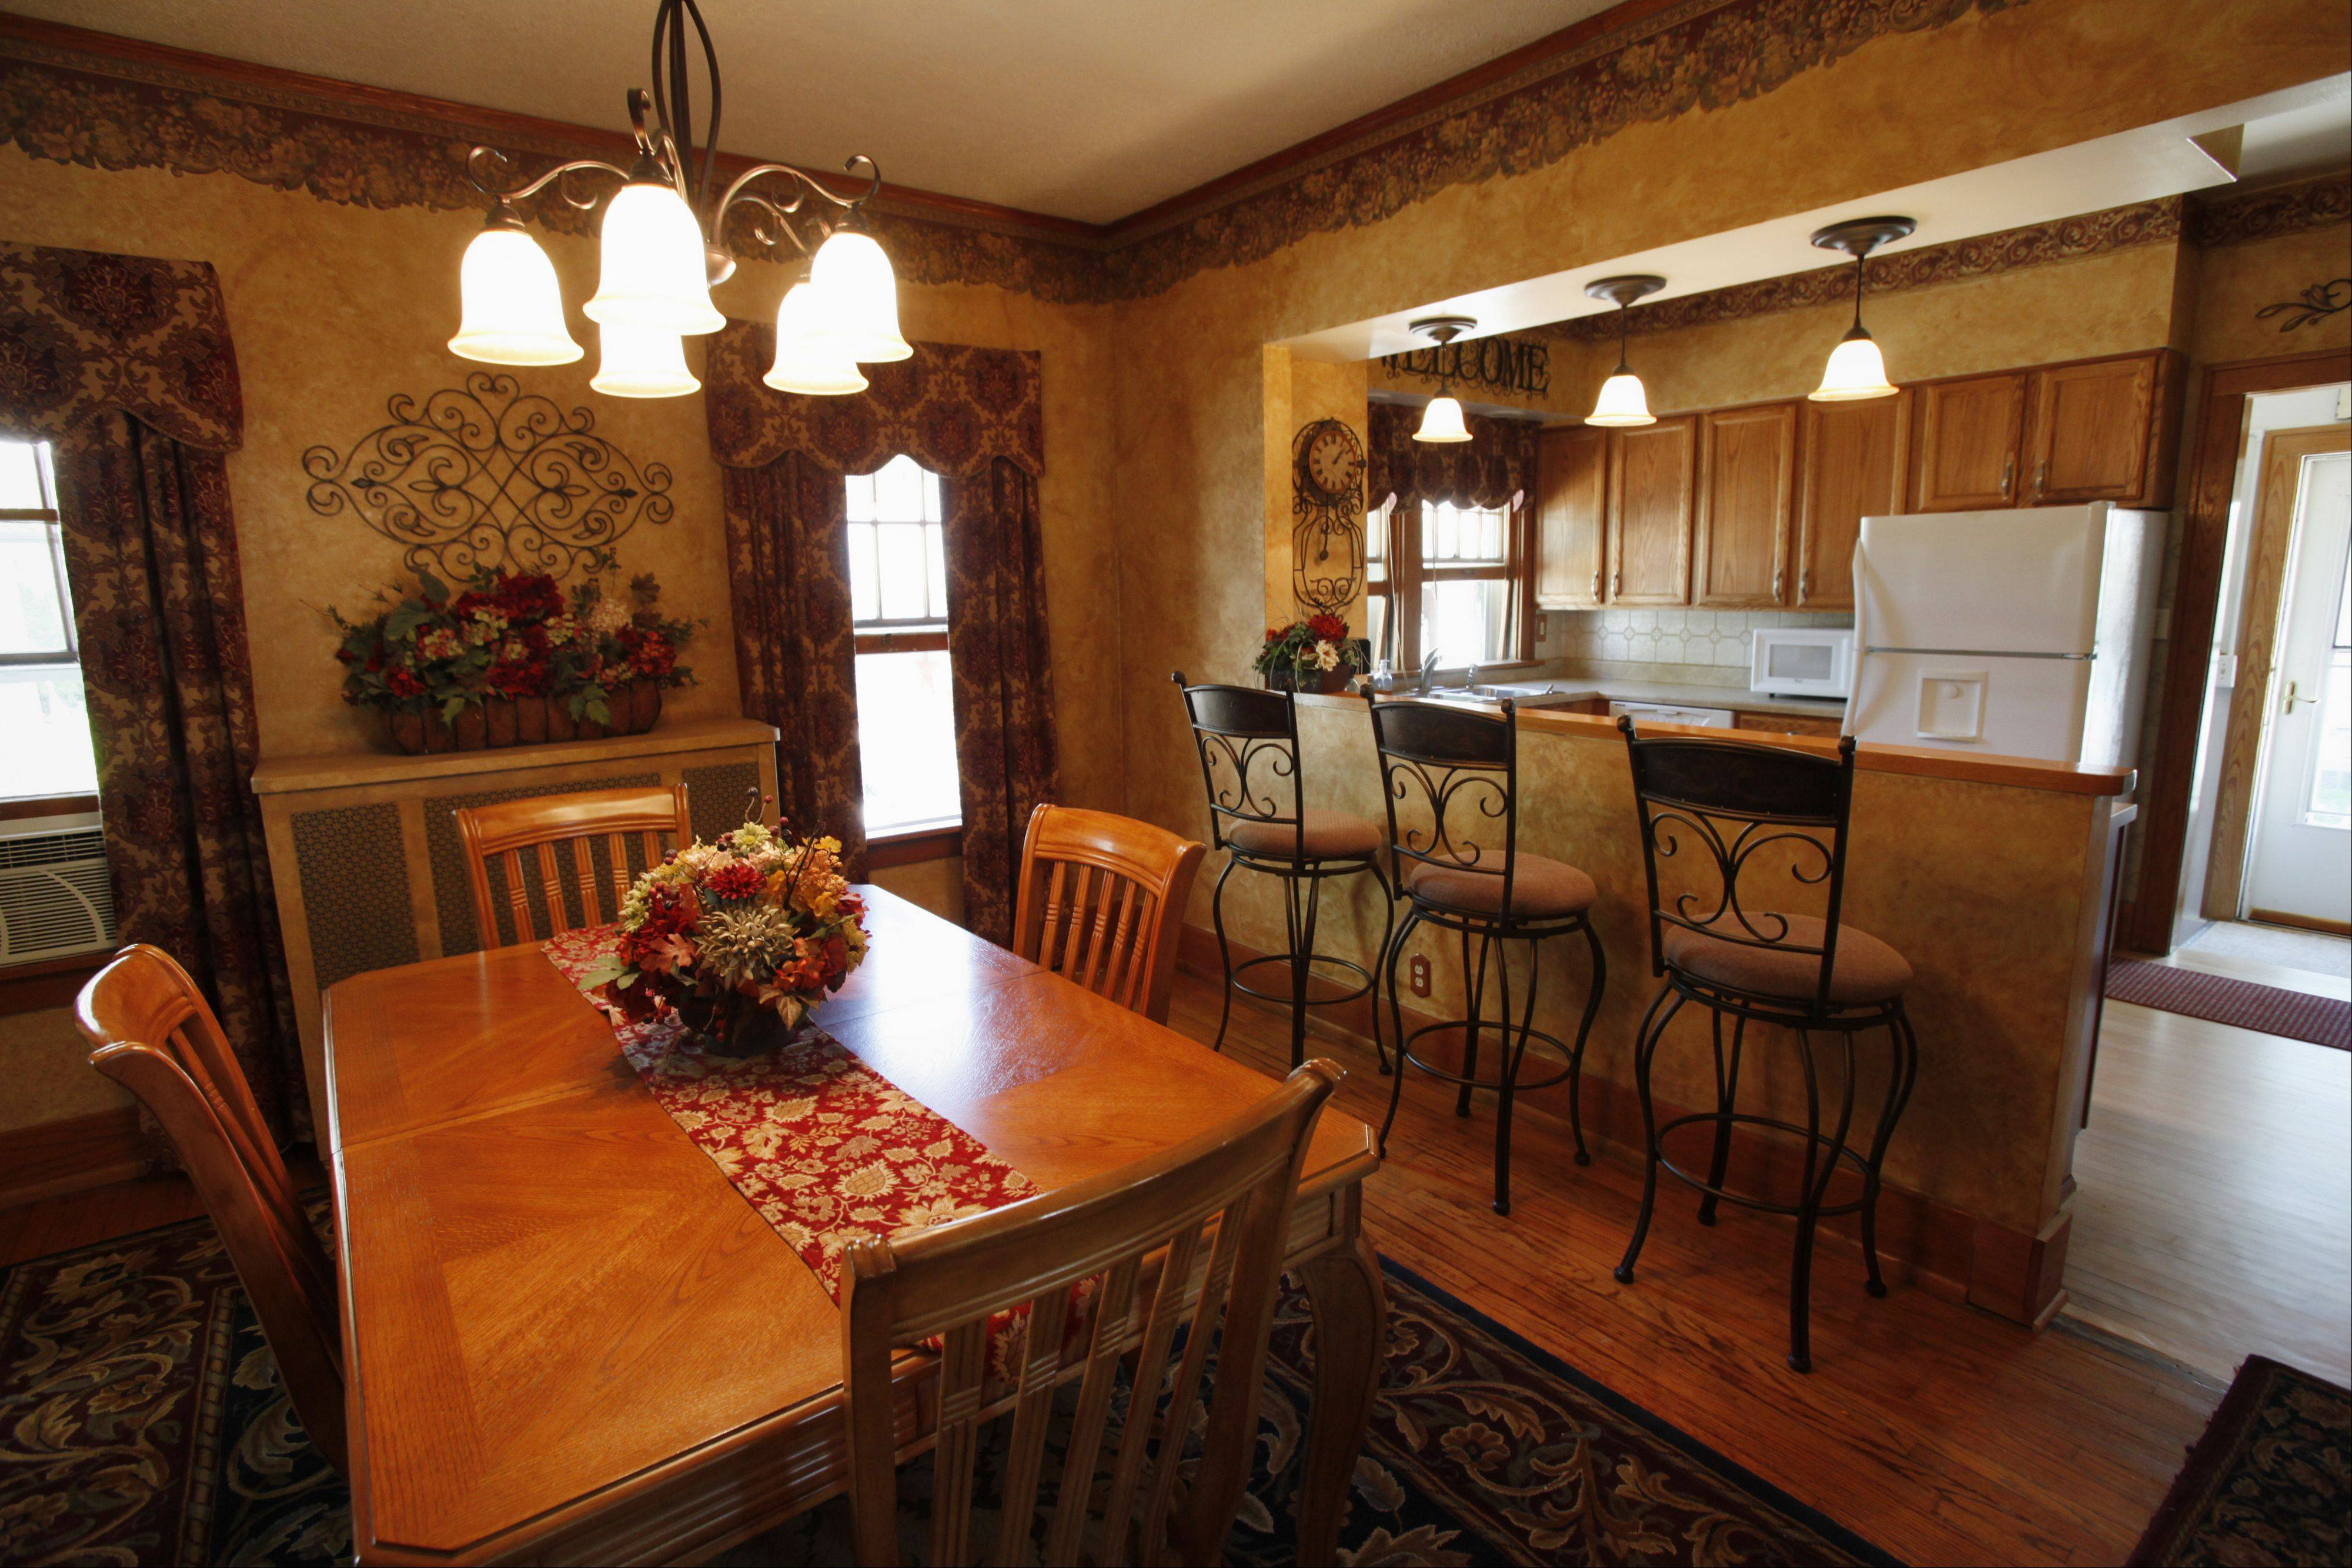 Homeowner Jean LeRoy took out part of the wall between her kitchen and dining room to create a more open floor plan at 670 Oak St. in Elgin.